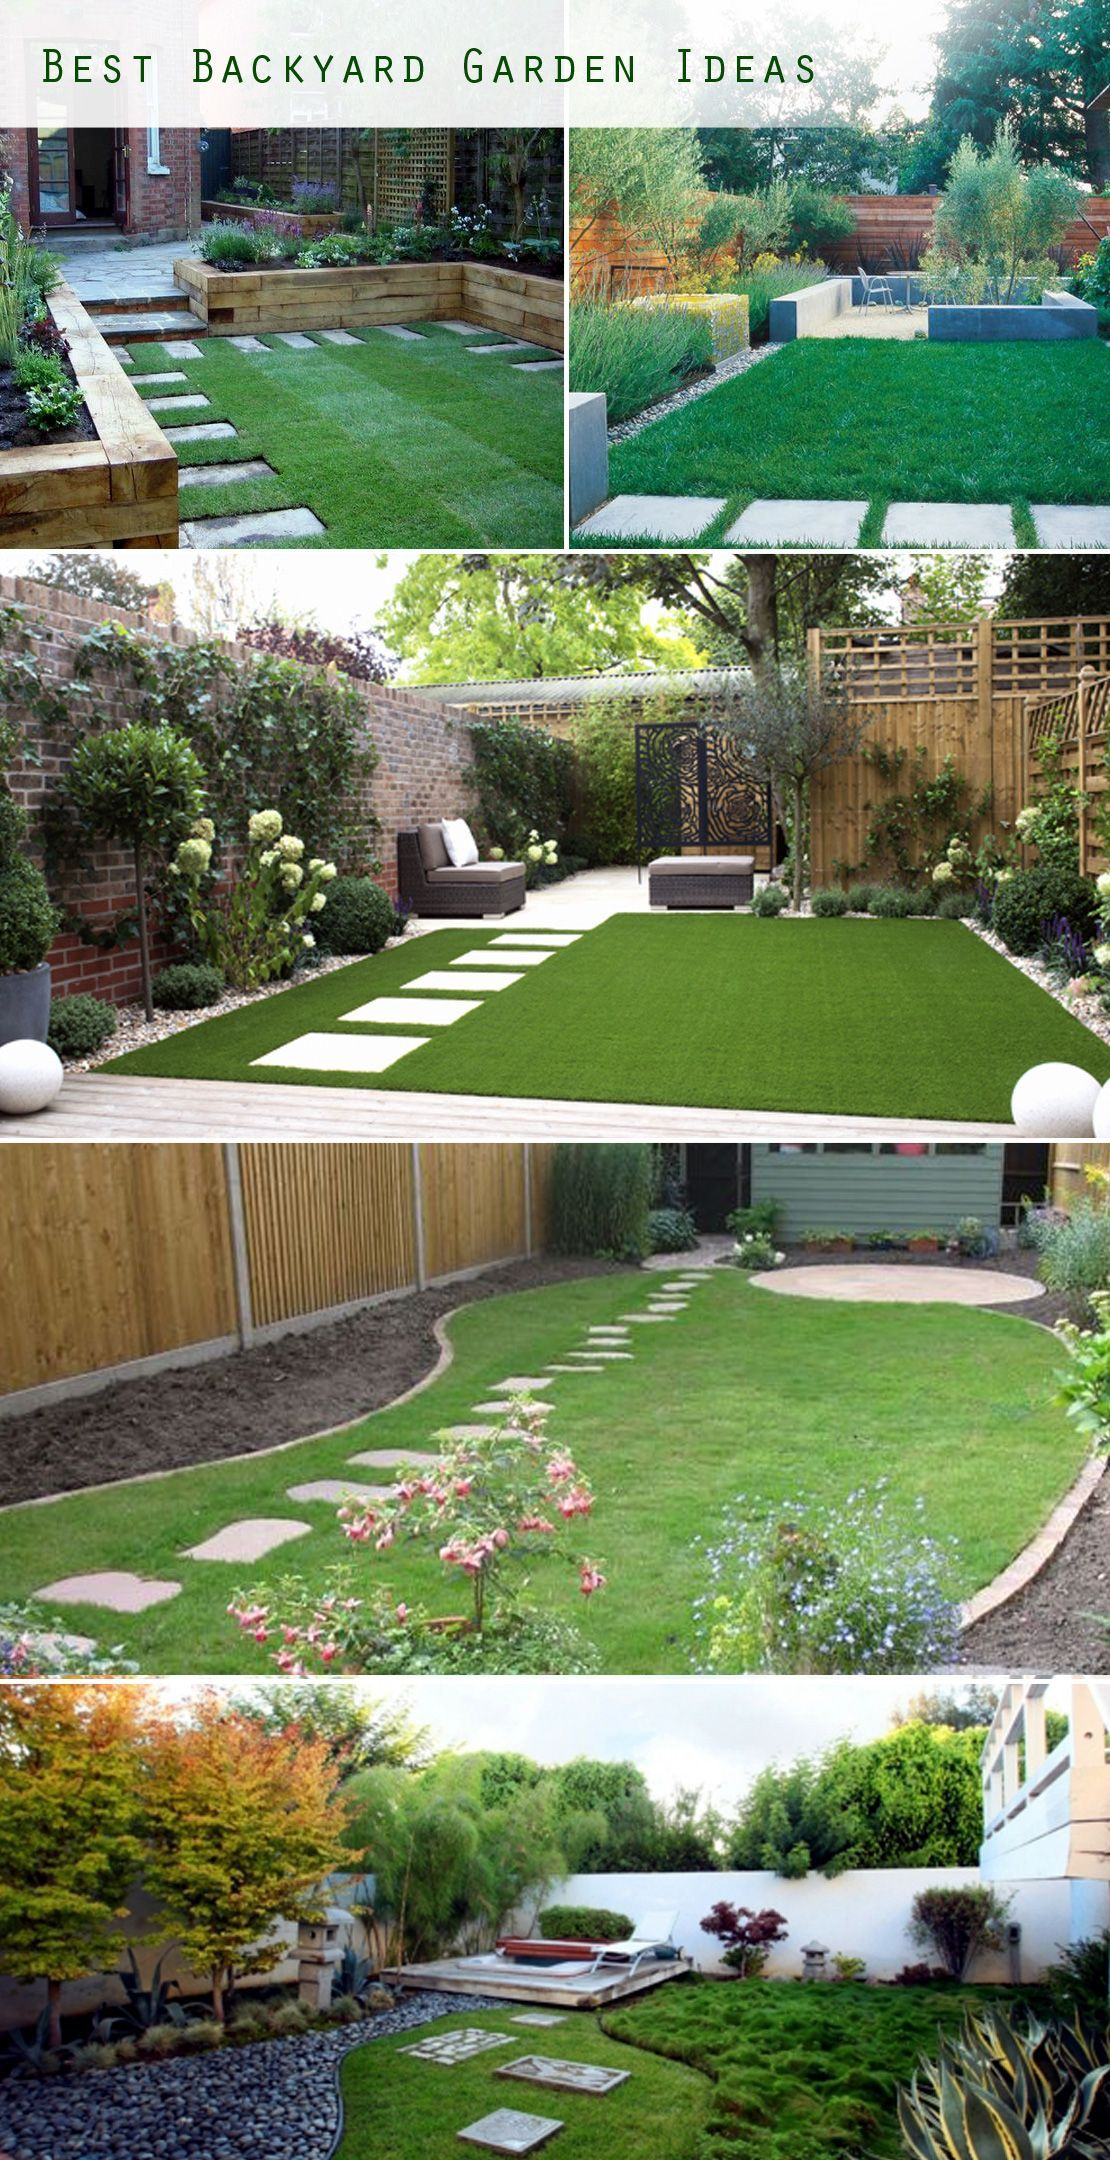 10 Amazing Garden Ideas Elegant And Also Gorgeous Backyard Garden Landscape Garden Landscape Design Garden Design Layout Landscaping